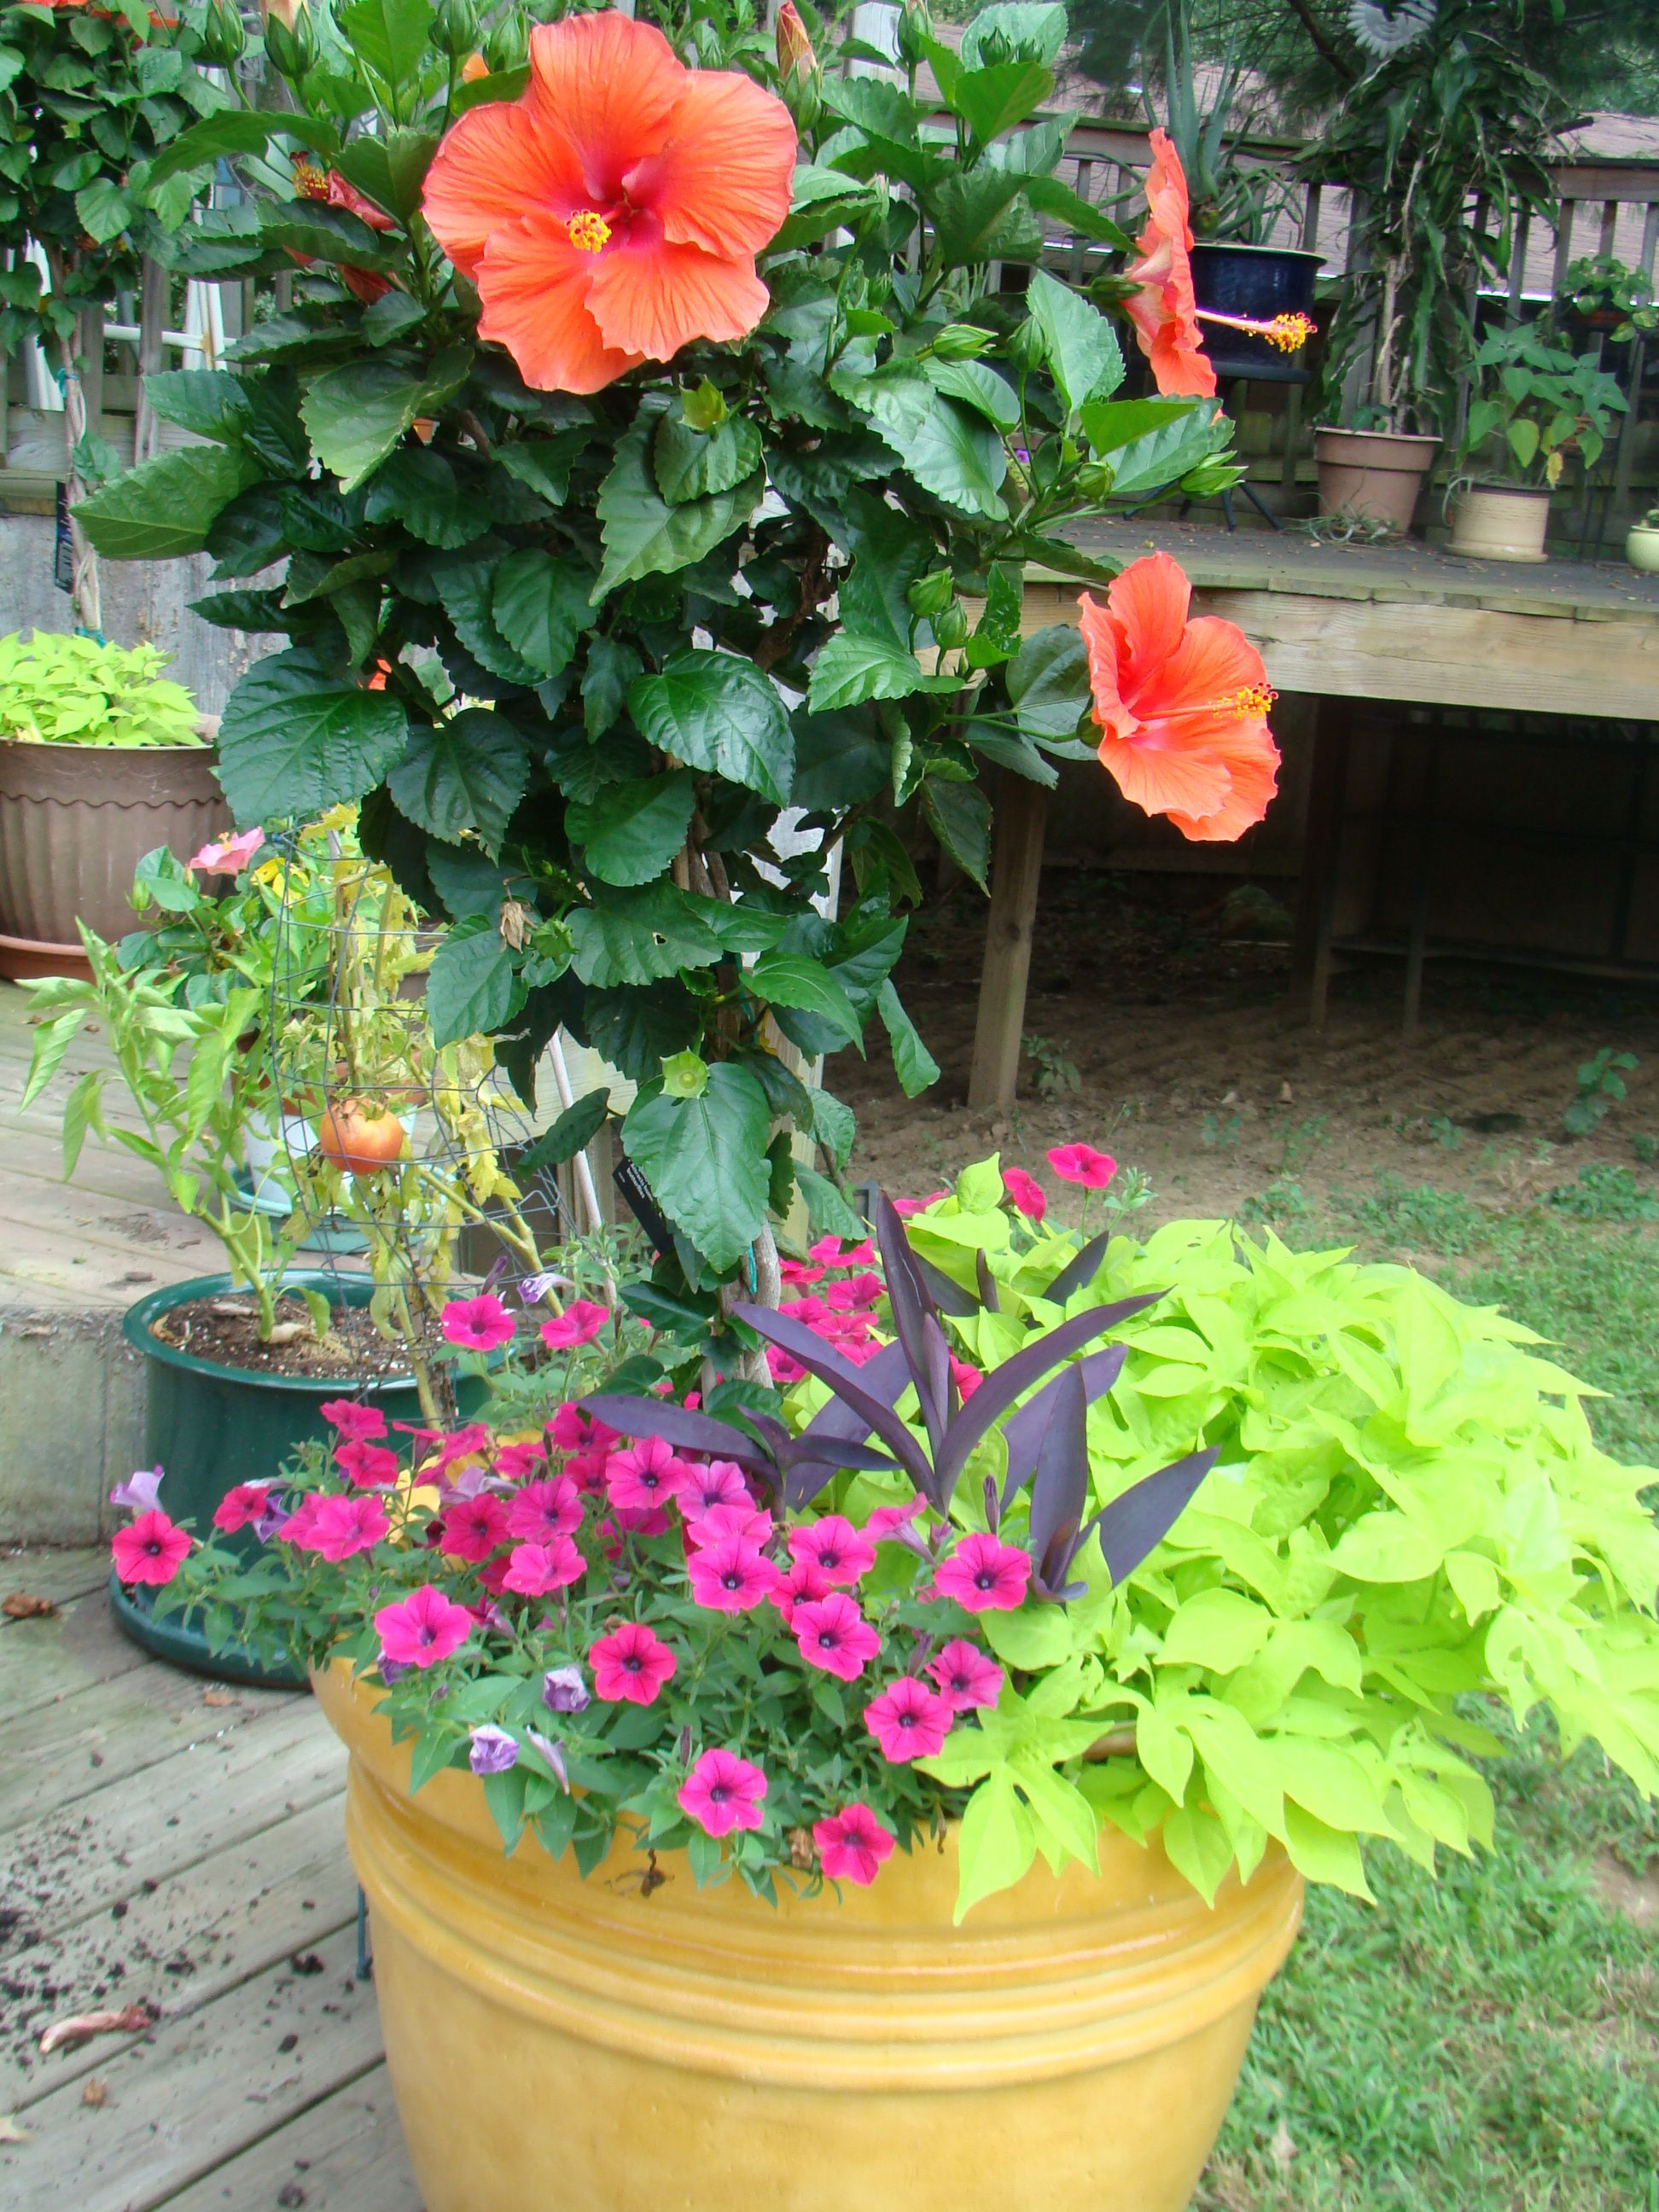 Hibiscus With Flower Arrangement In 20 In Planter With Sweet Potato